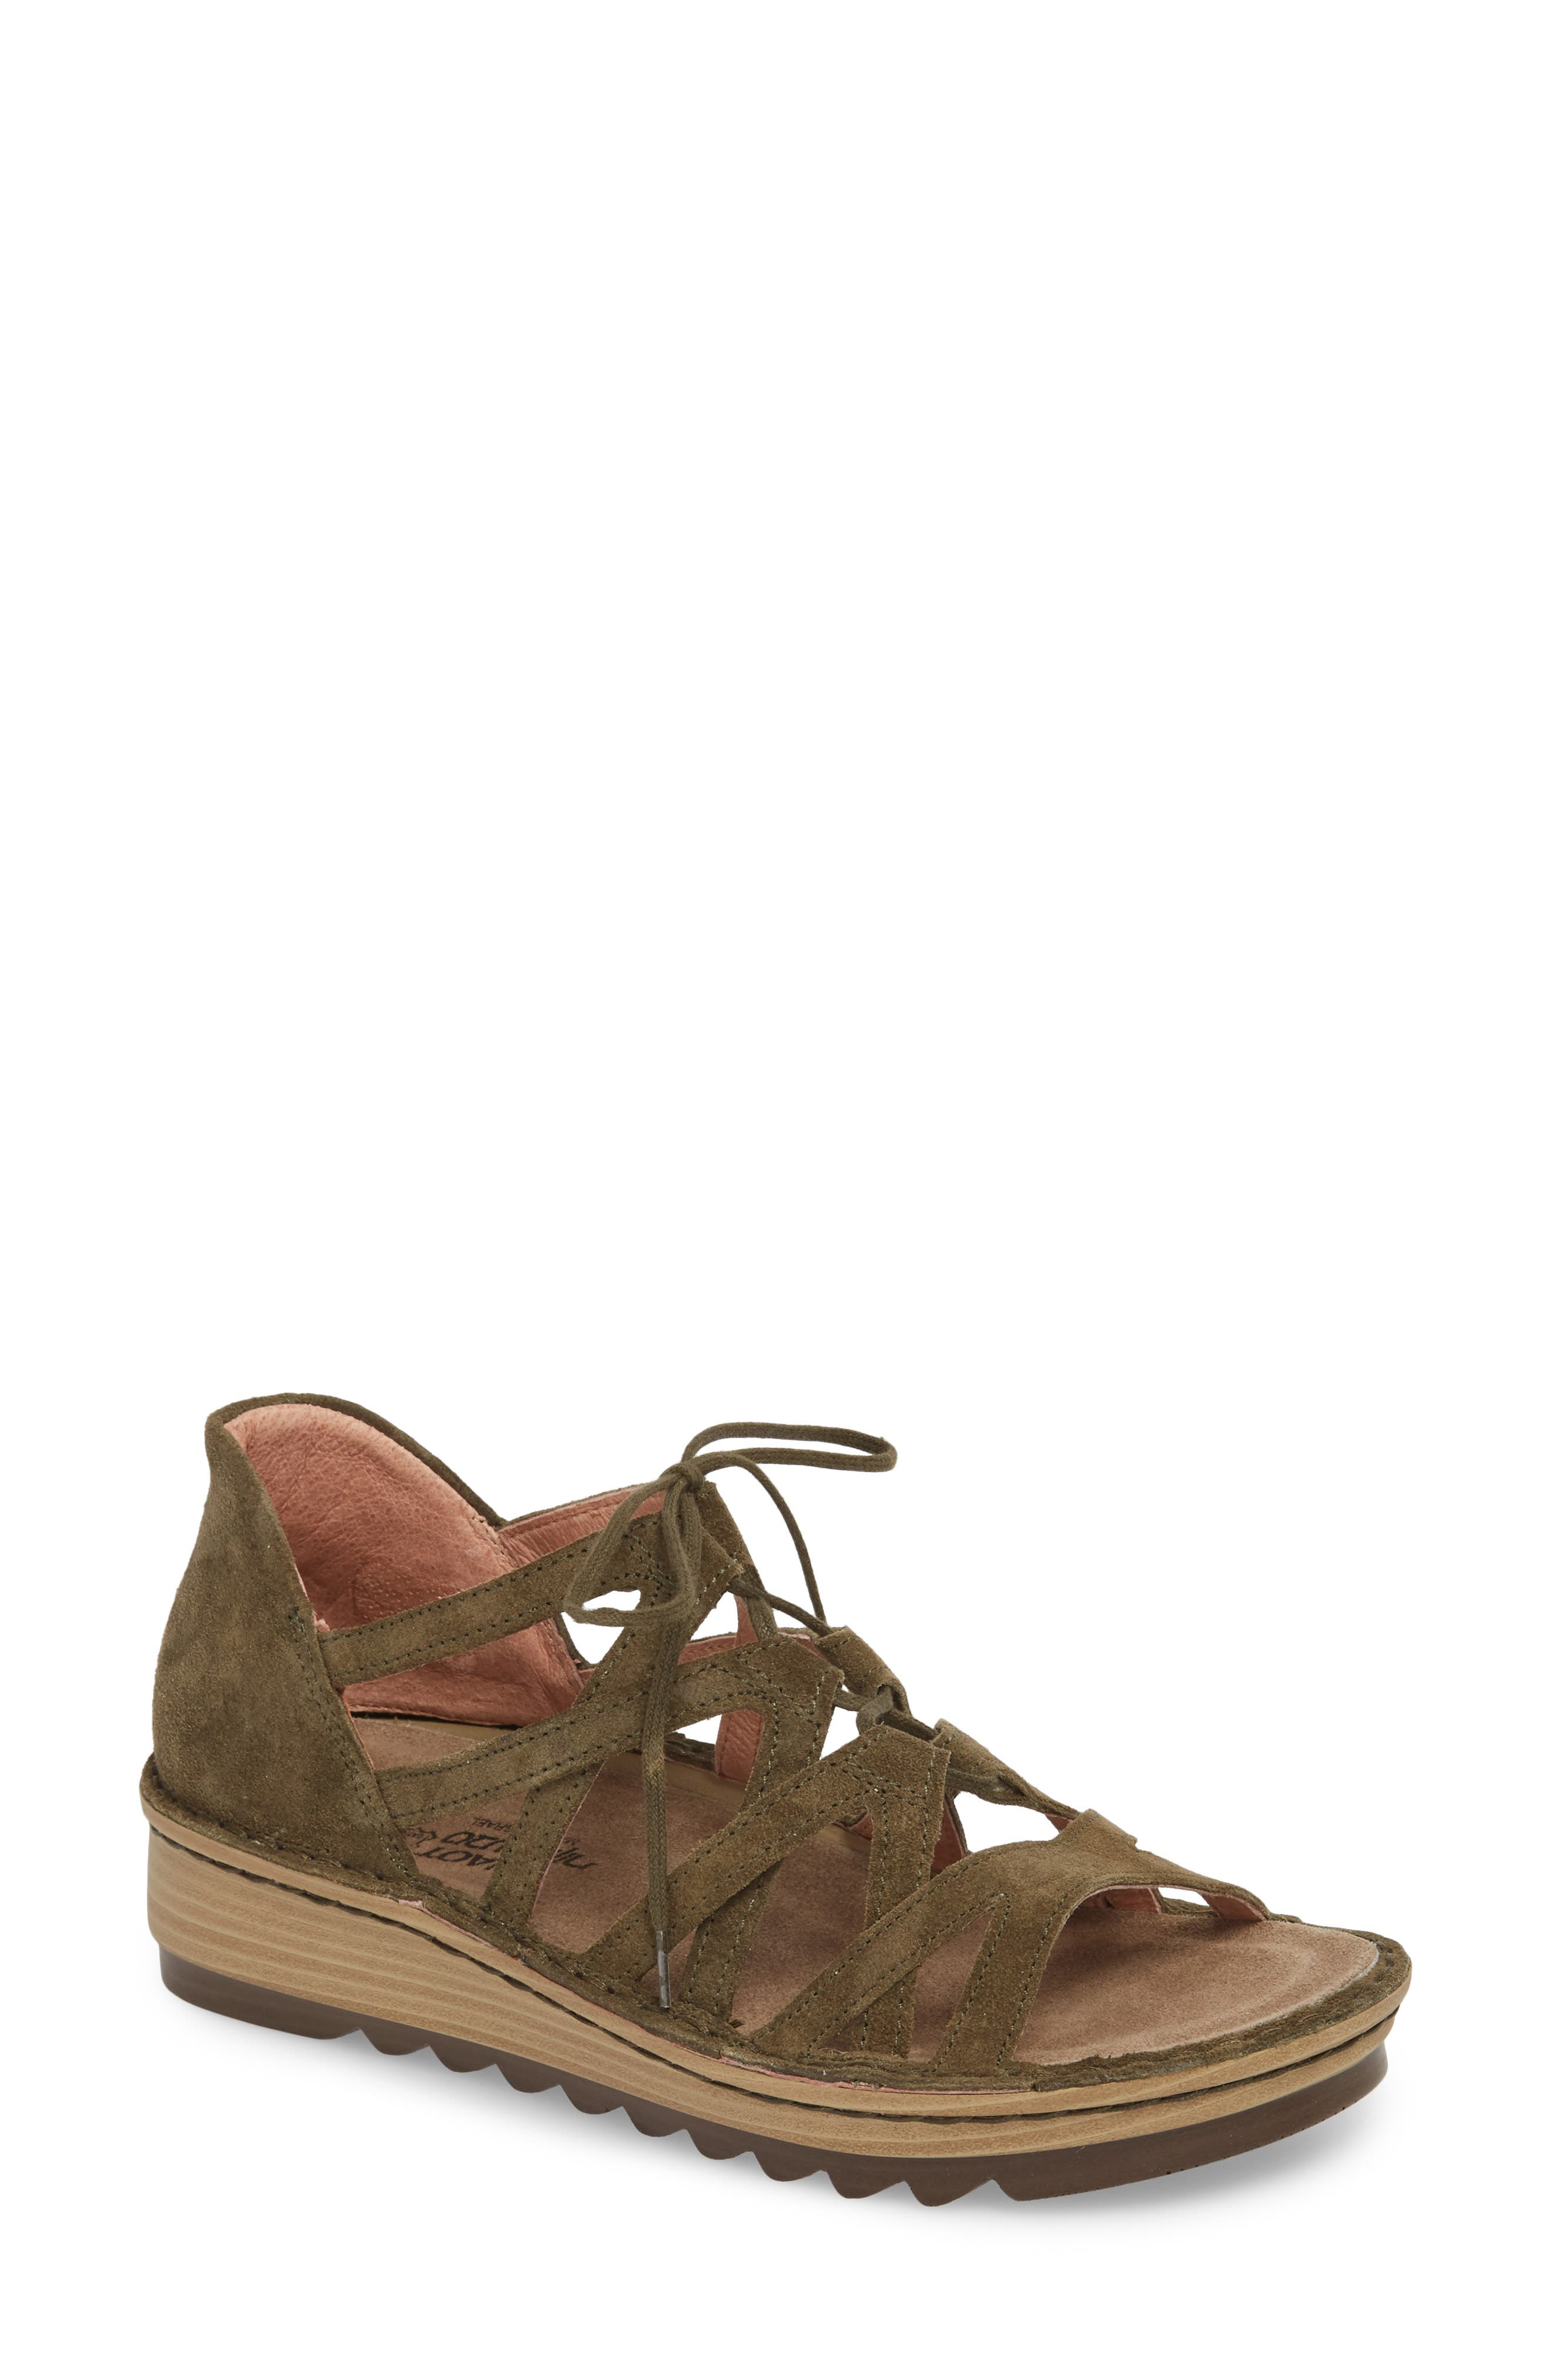 Yarrow Sandal,                         Main,                         color, Oily Olive Suede